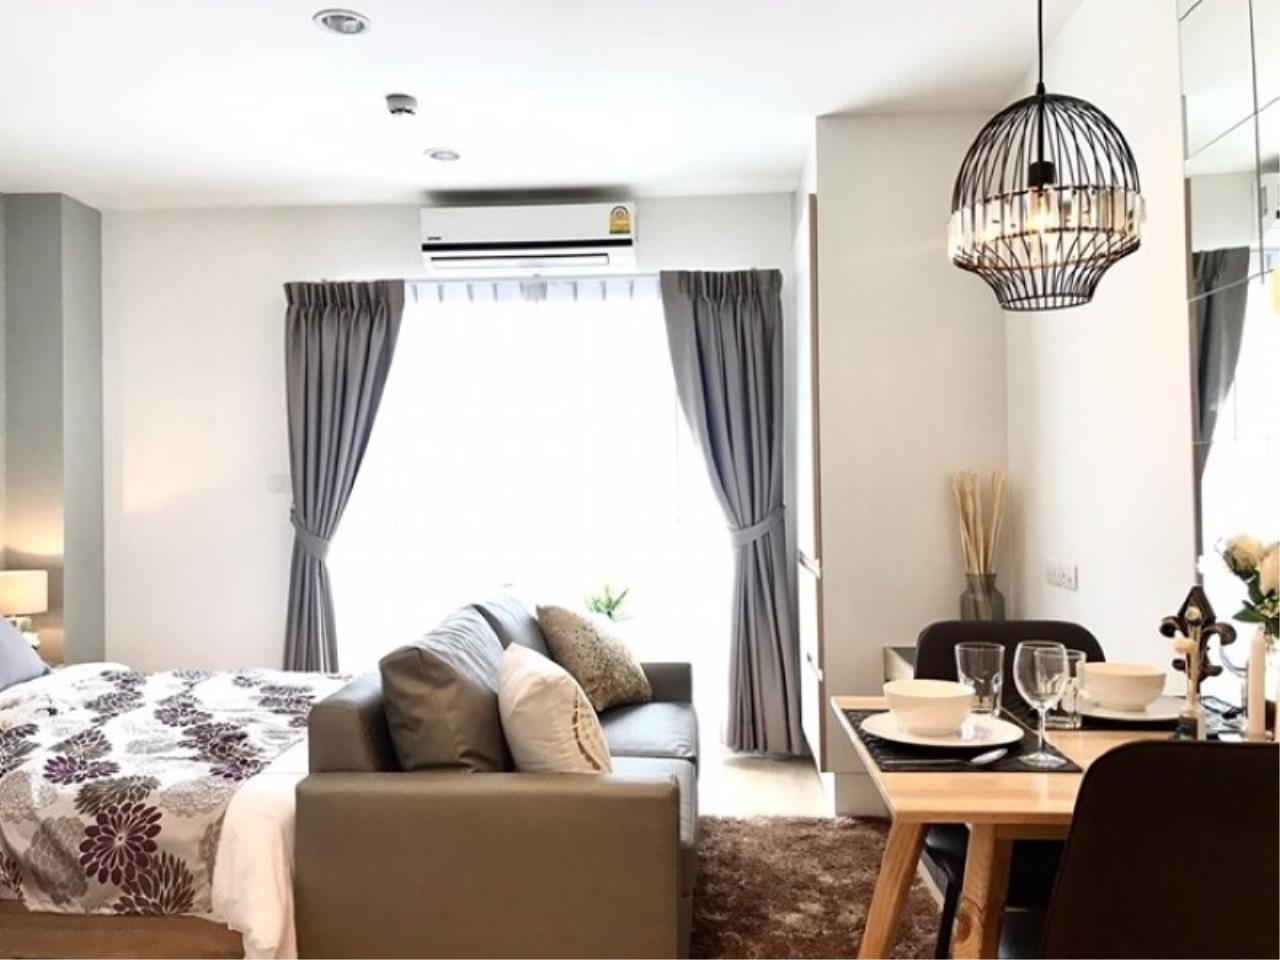 Century21 Skylux Agency's The Nest Sukhumvit 22 / Condo For Rent / 1 Bedroom / 25 SQM / MRT Queen Sirikit National Convention Centre / Bangkok 7